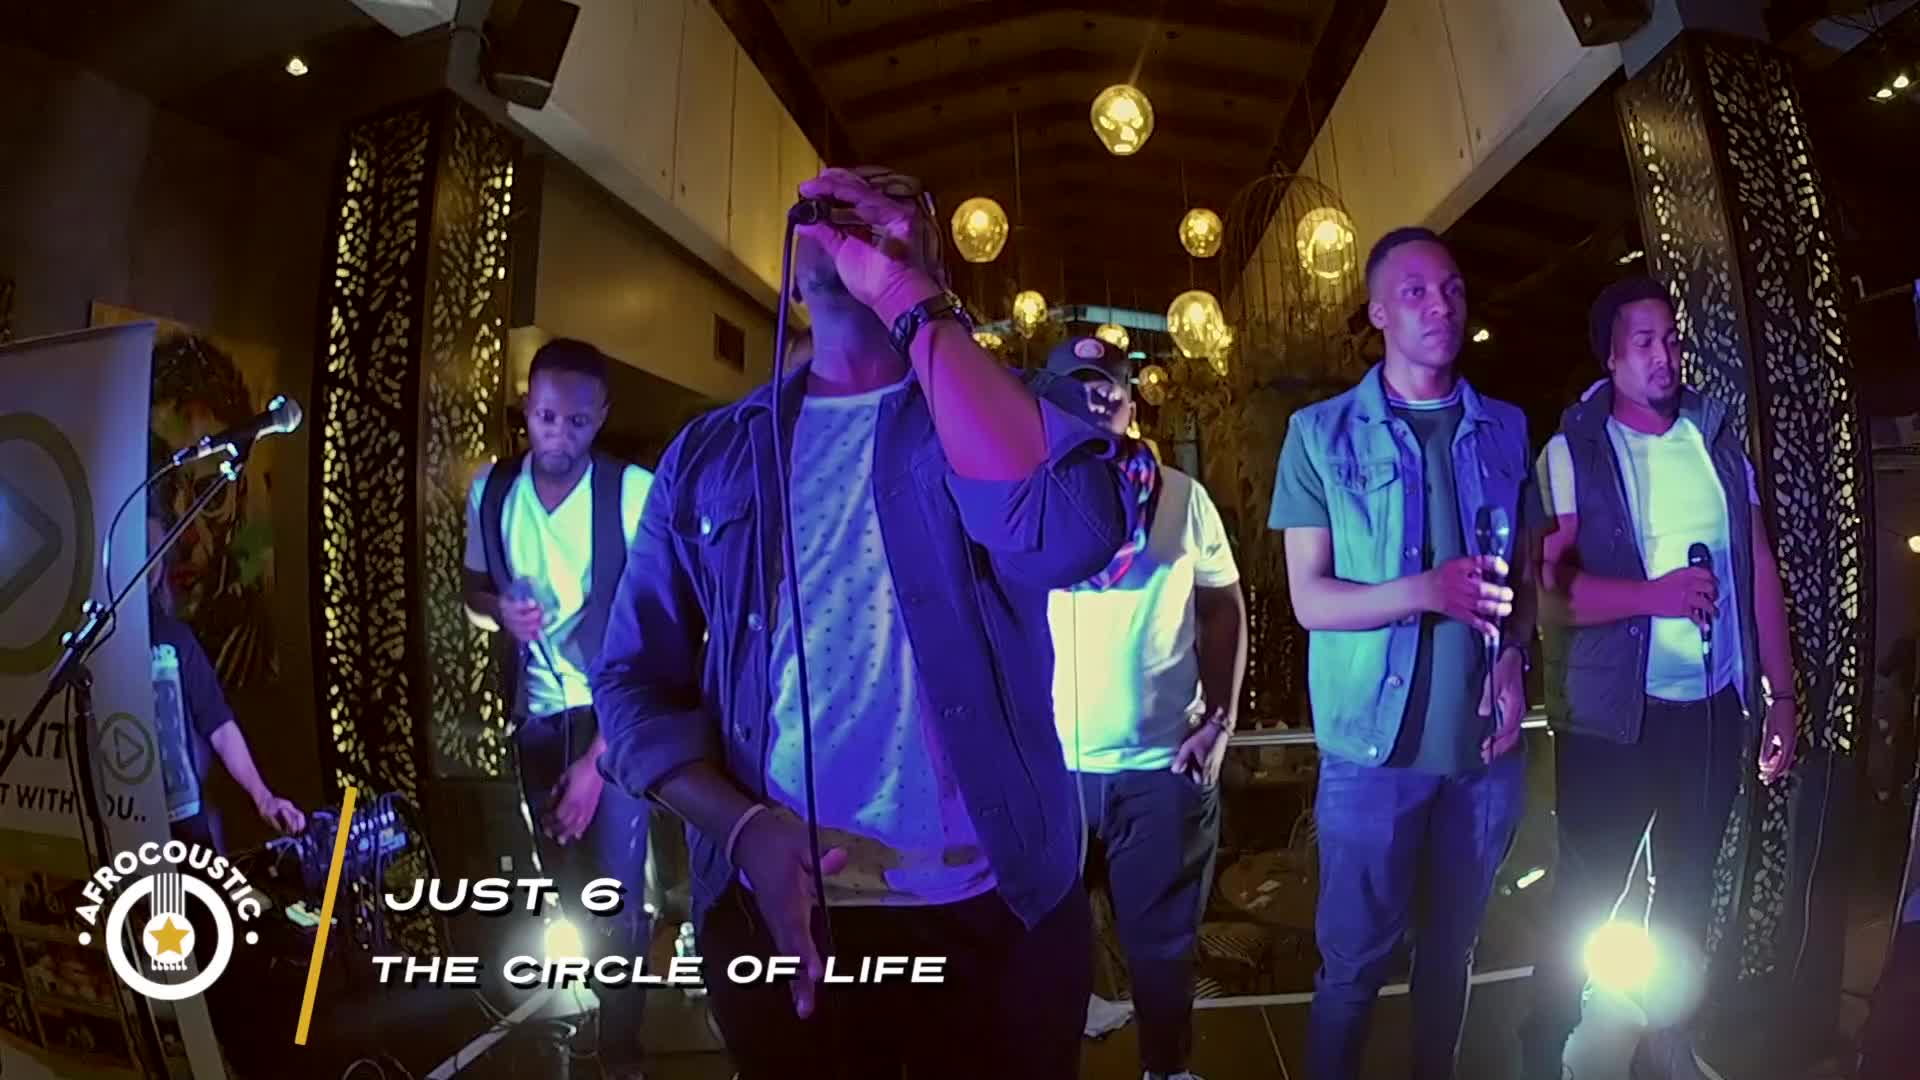 Afrocoustic - Just 6 - The Circle of Life